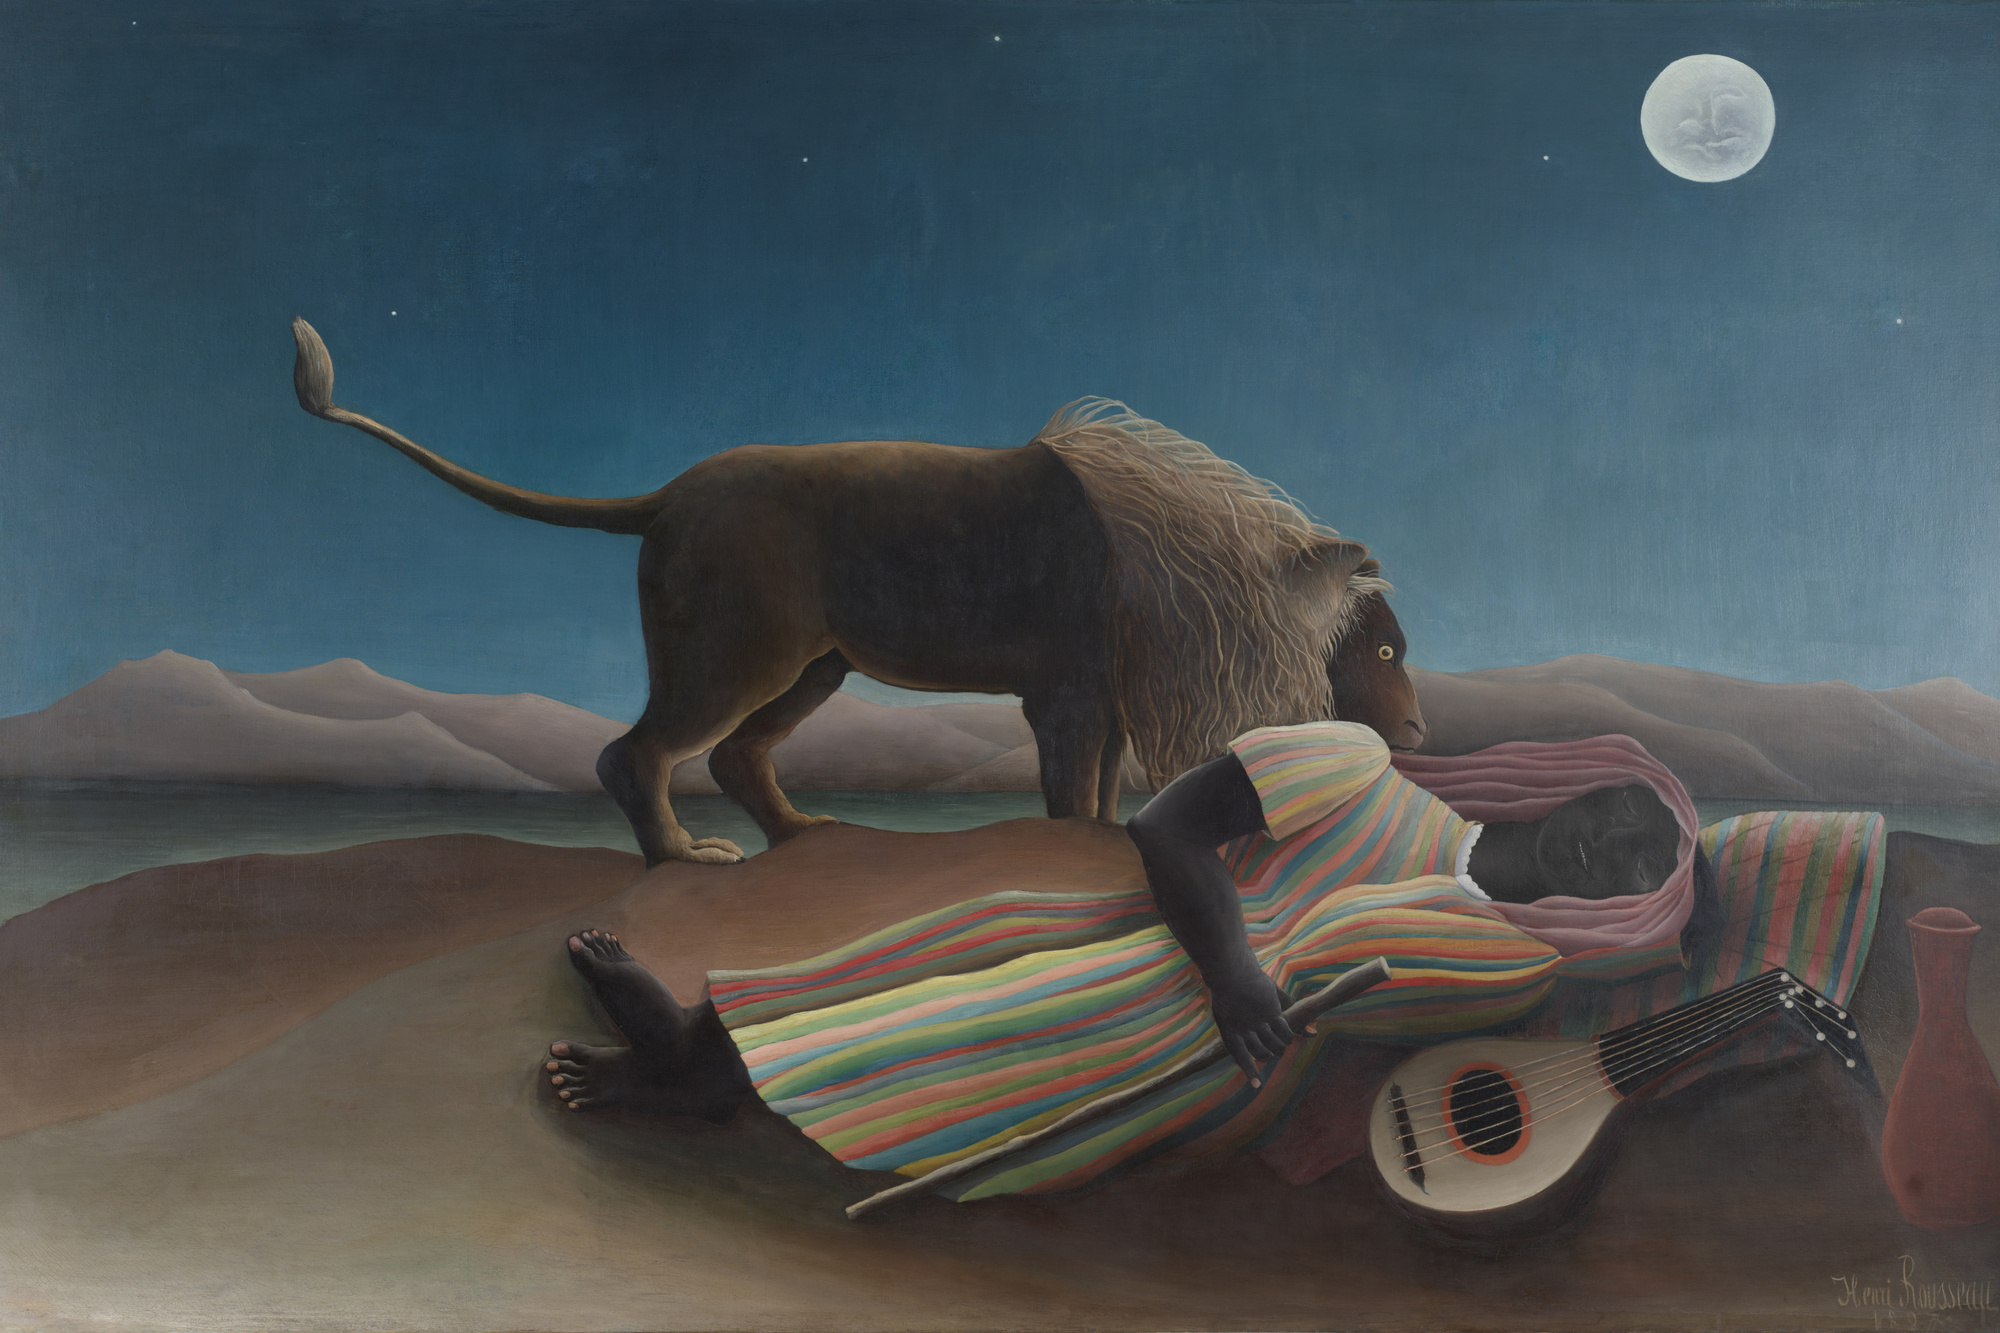 "Henri Rousseau. The Sleeping Gypsy. 1897. Oil on canvas, 51"" × 6' 7"" (129.5 × 200.7 cm). Gift of Mrs. Simon Guggenheim"